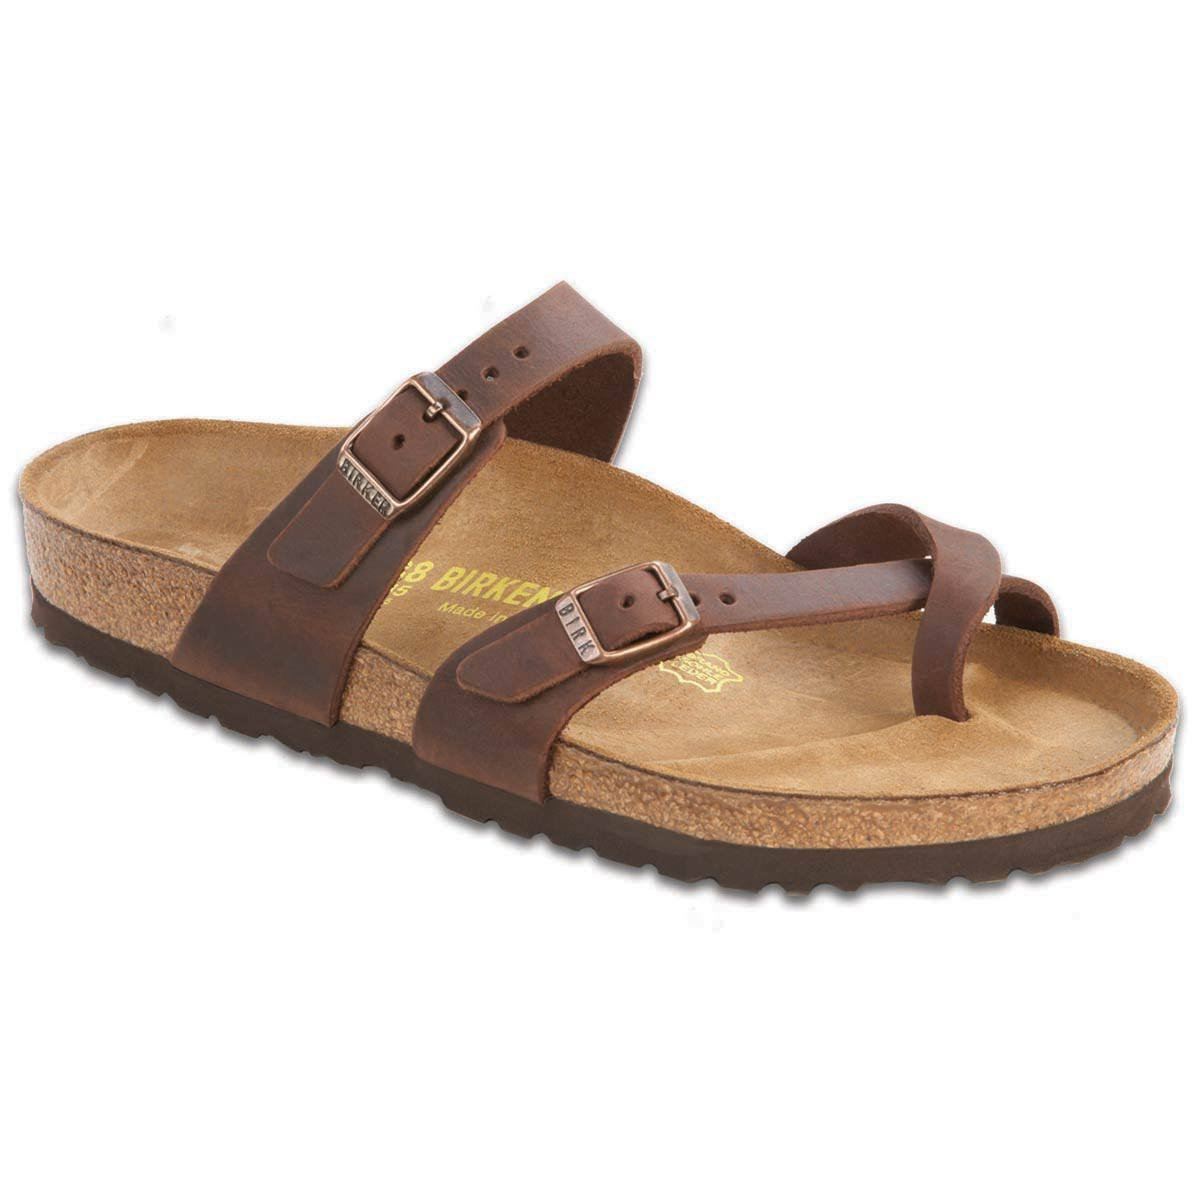 Birkenstock Mayari Waxy Leather Habana Sandals - Brown, 7.5 US